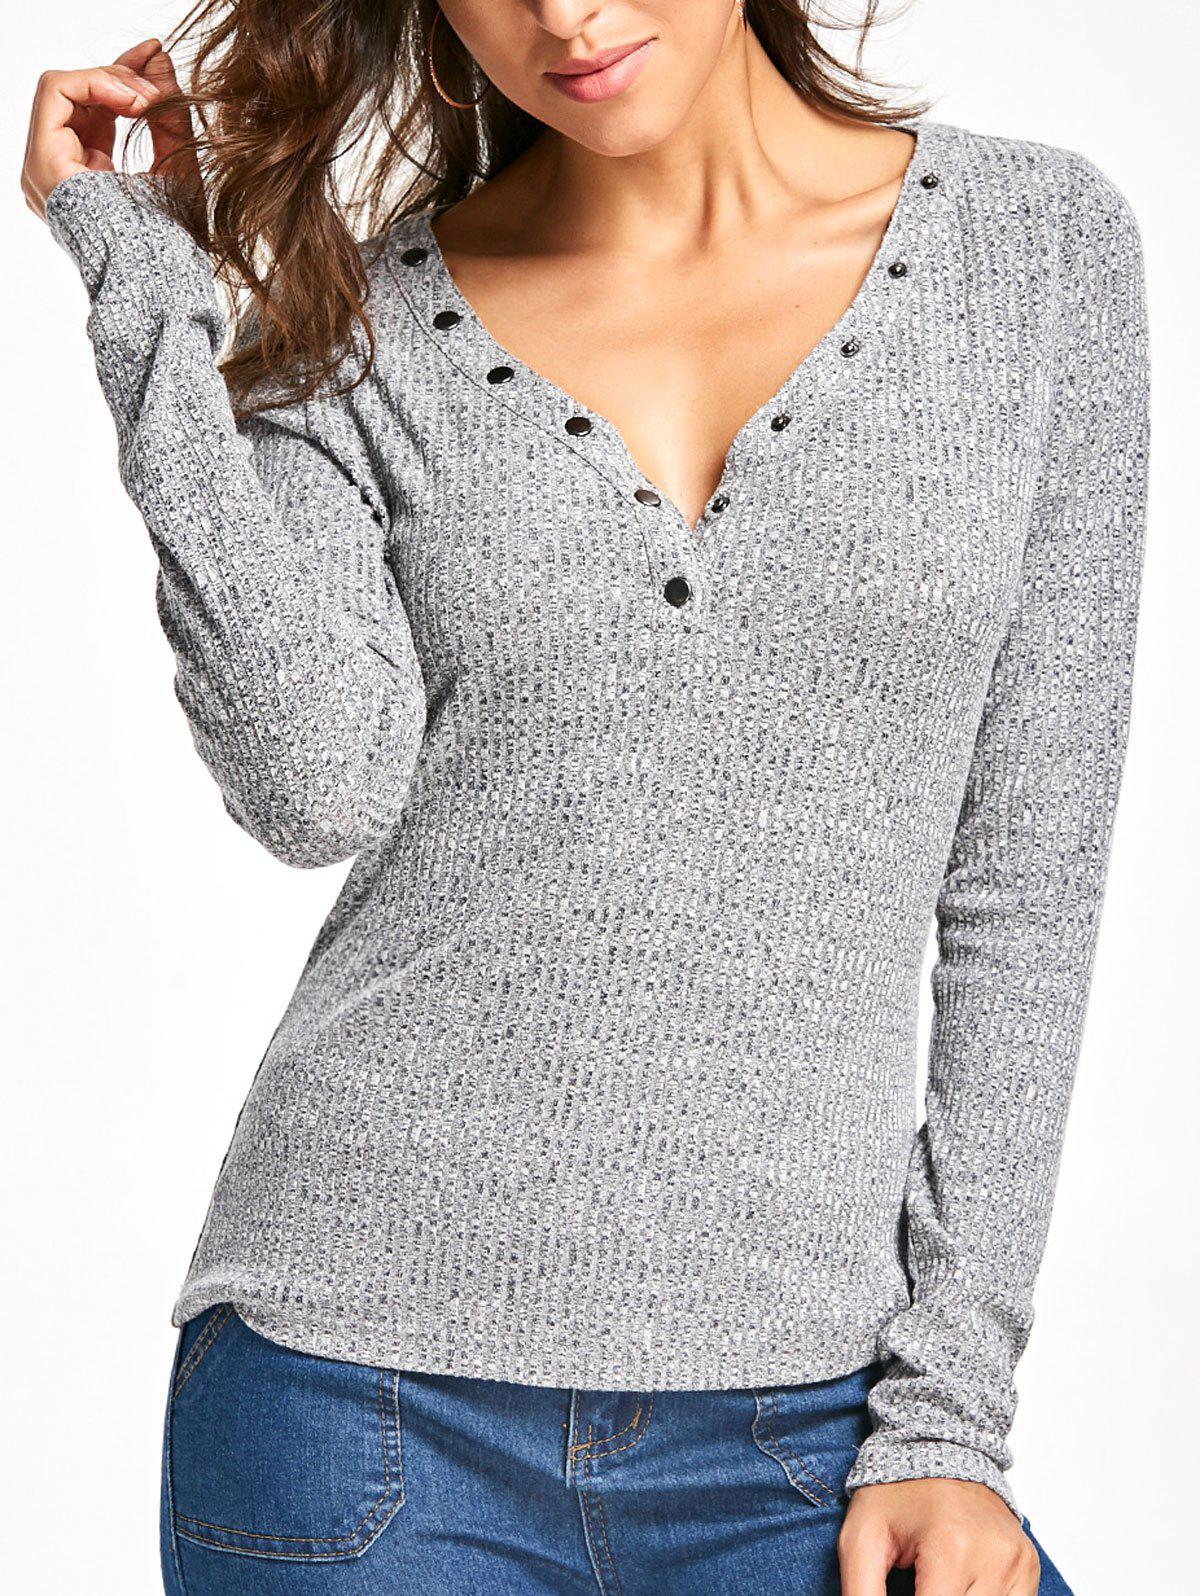 Long Sleeve Button V Neck Ribbed TopWOMEN<br><br>Size: XL; Color: GRAY; Material: Cotton Blends,Polyester,Spandex; Shirt Length: Regular; Sleeve Length: Full; Collar: V-Neck; Style: Fashion; Pattern Type: Solid; Season: Fall,Spring; Weight: 0.2540kg; Package Contents: 1 x Top;